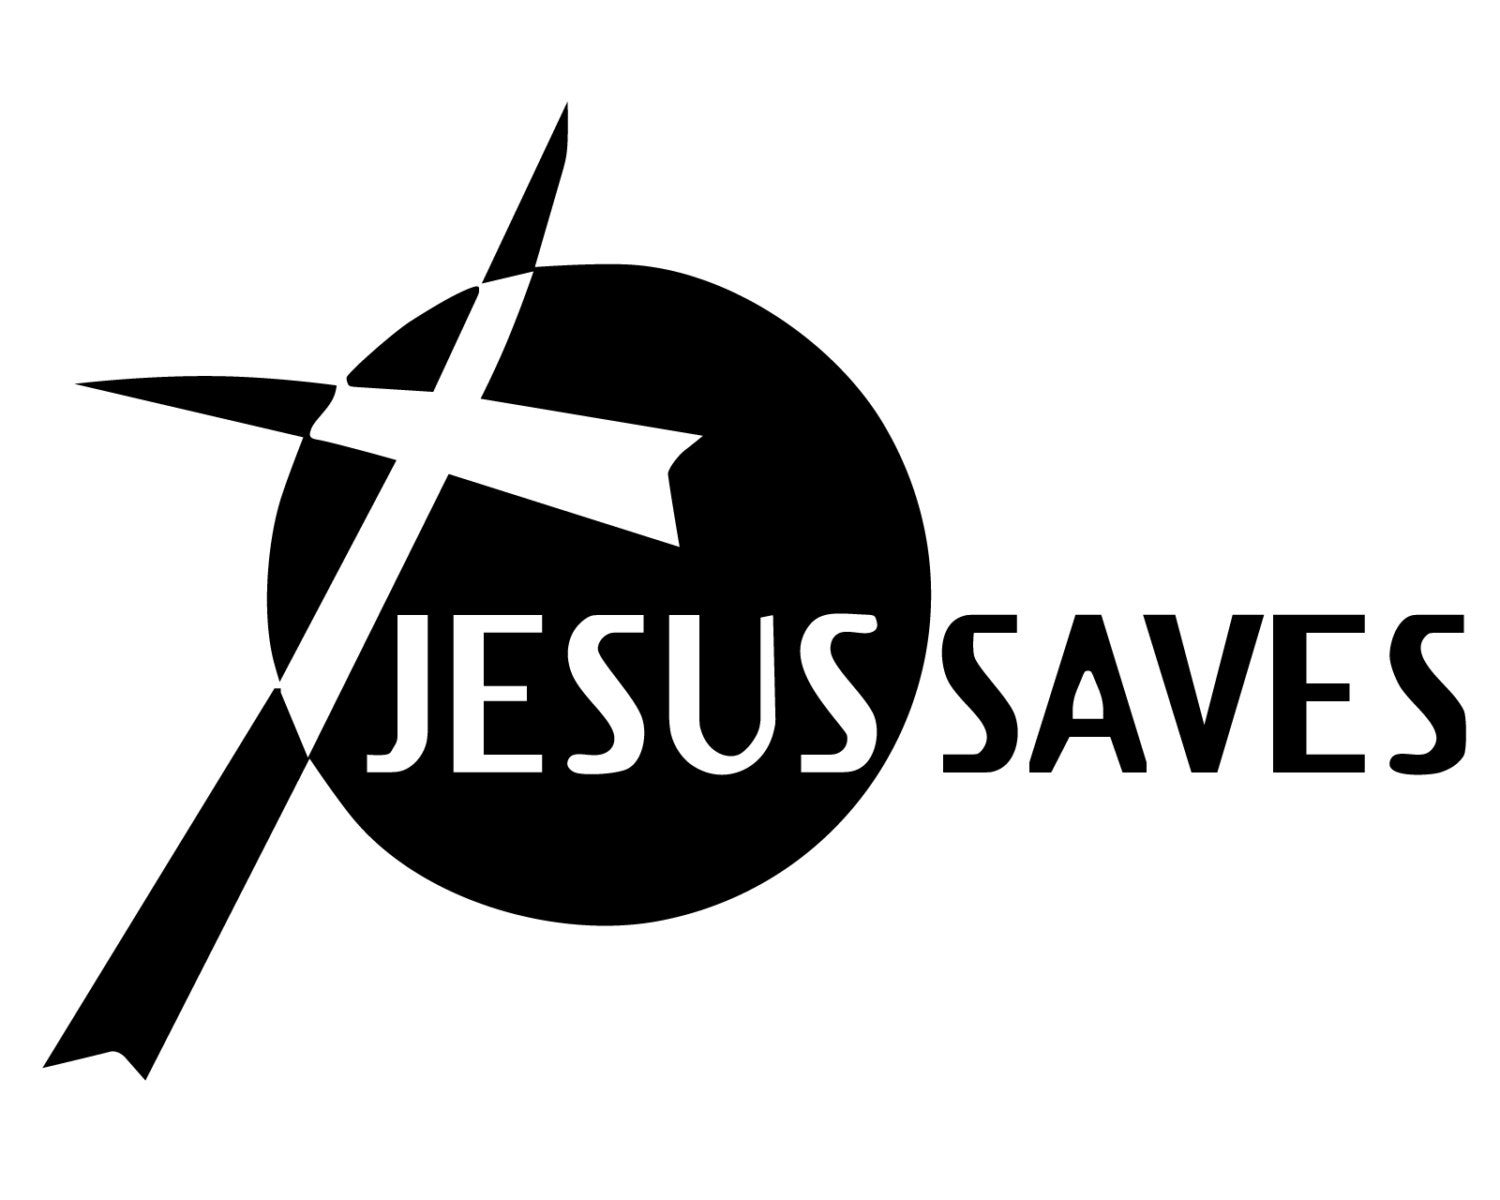 Design Sticker In Jesus